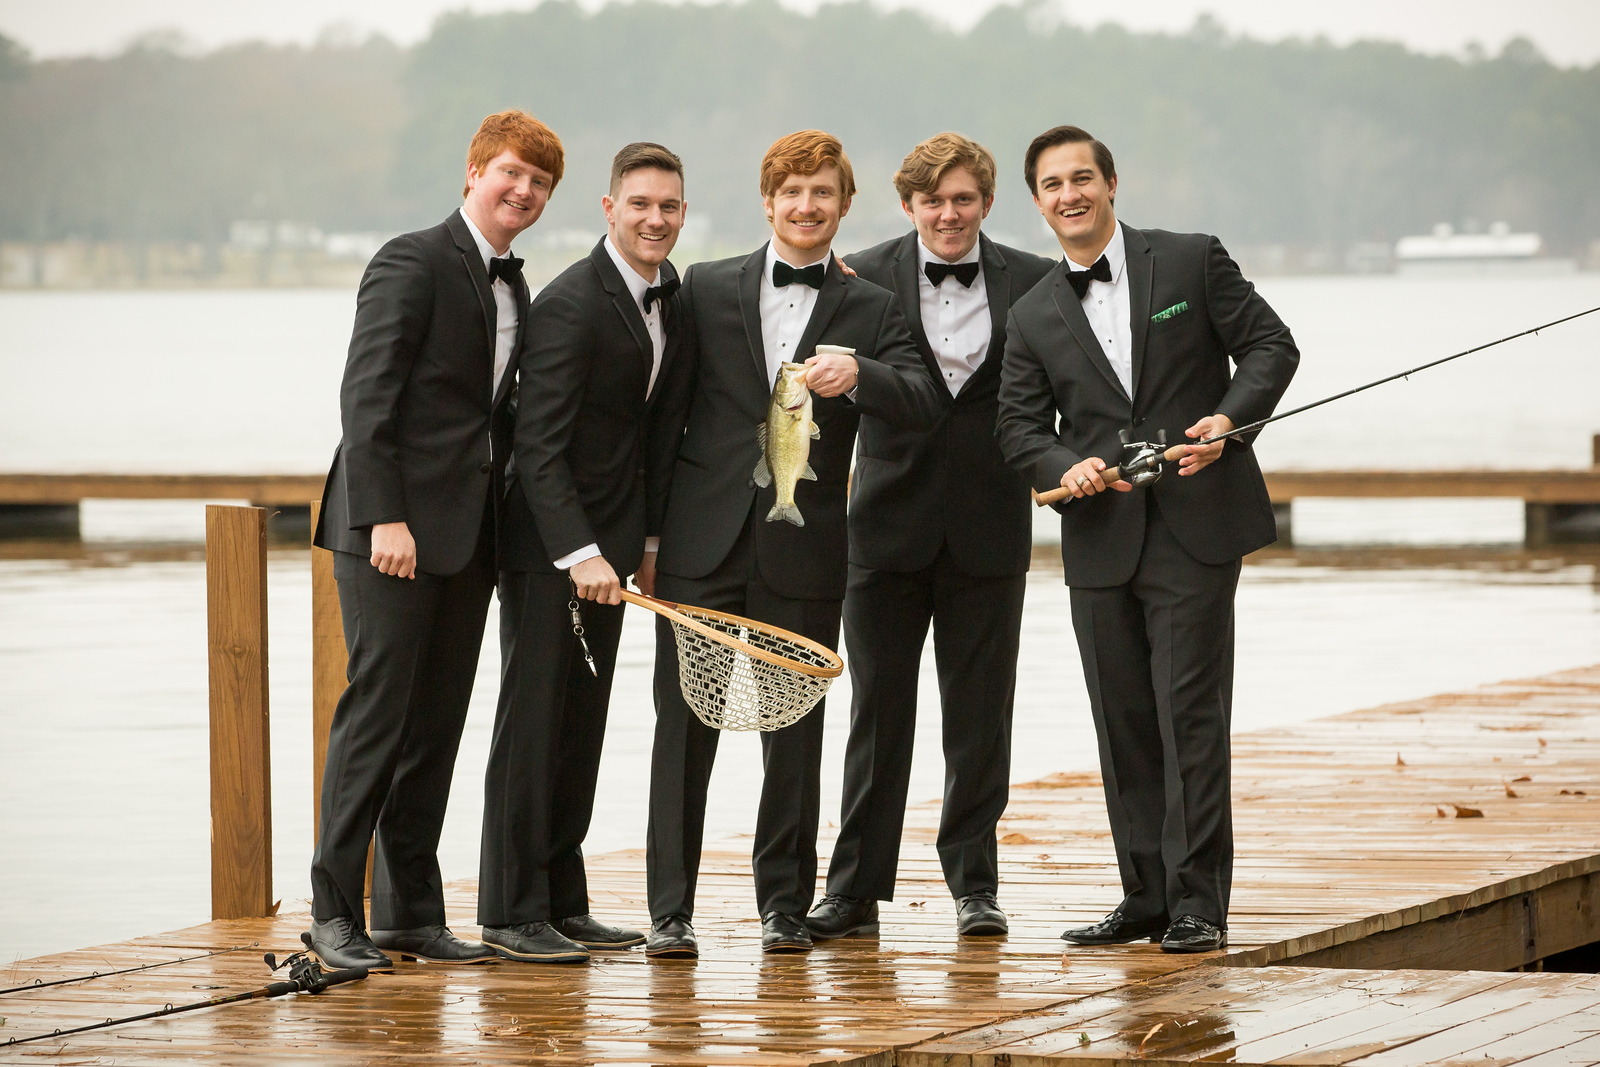 A groom and his groomsmen fishing on the wedding day